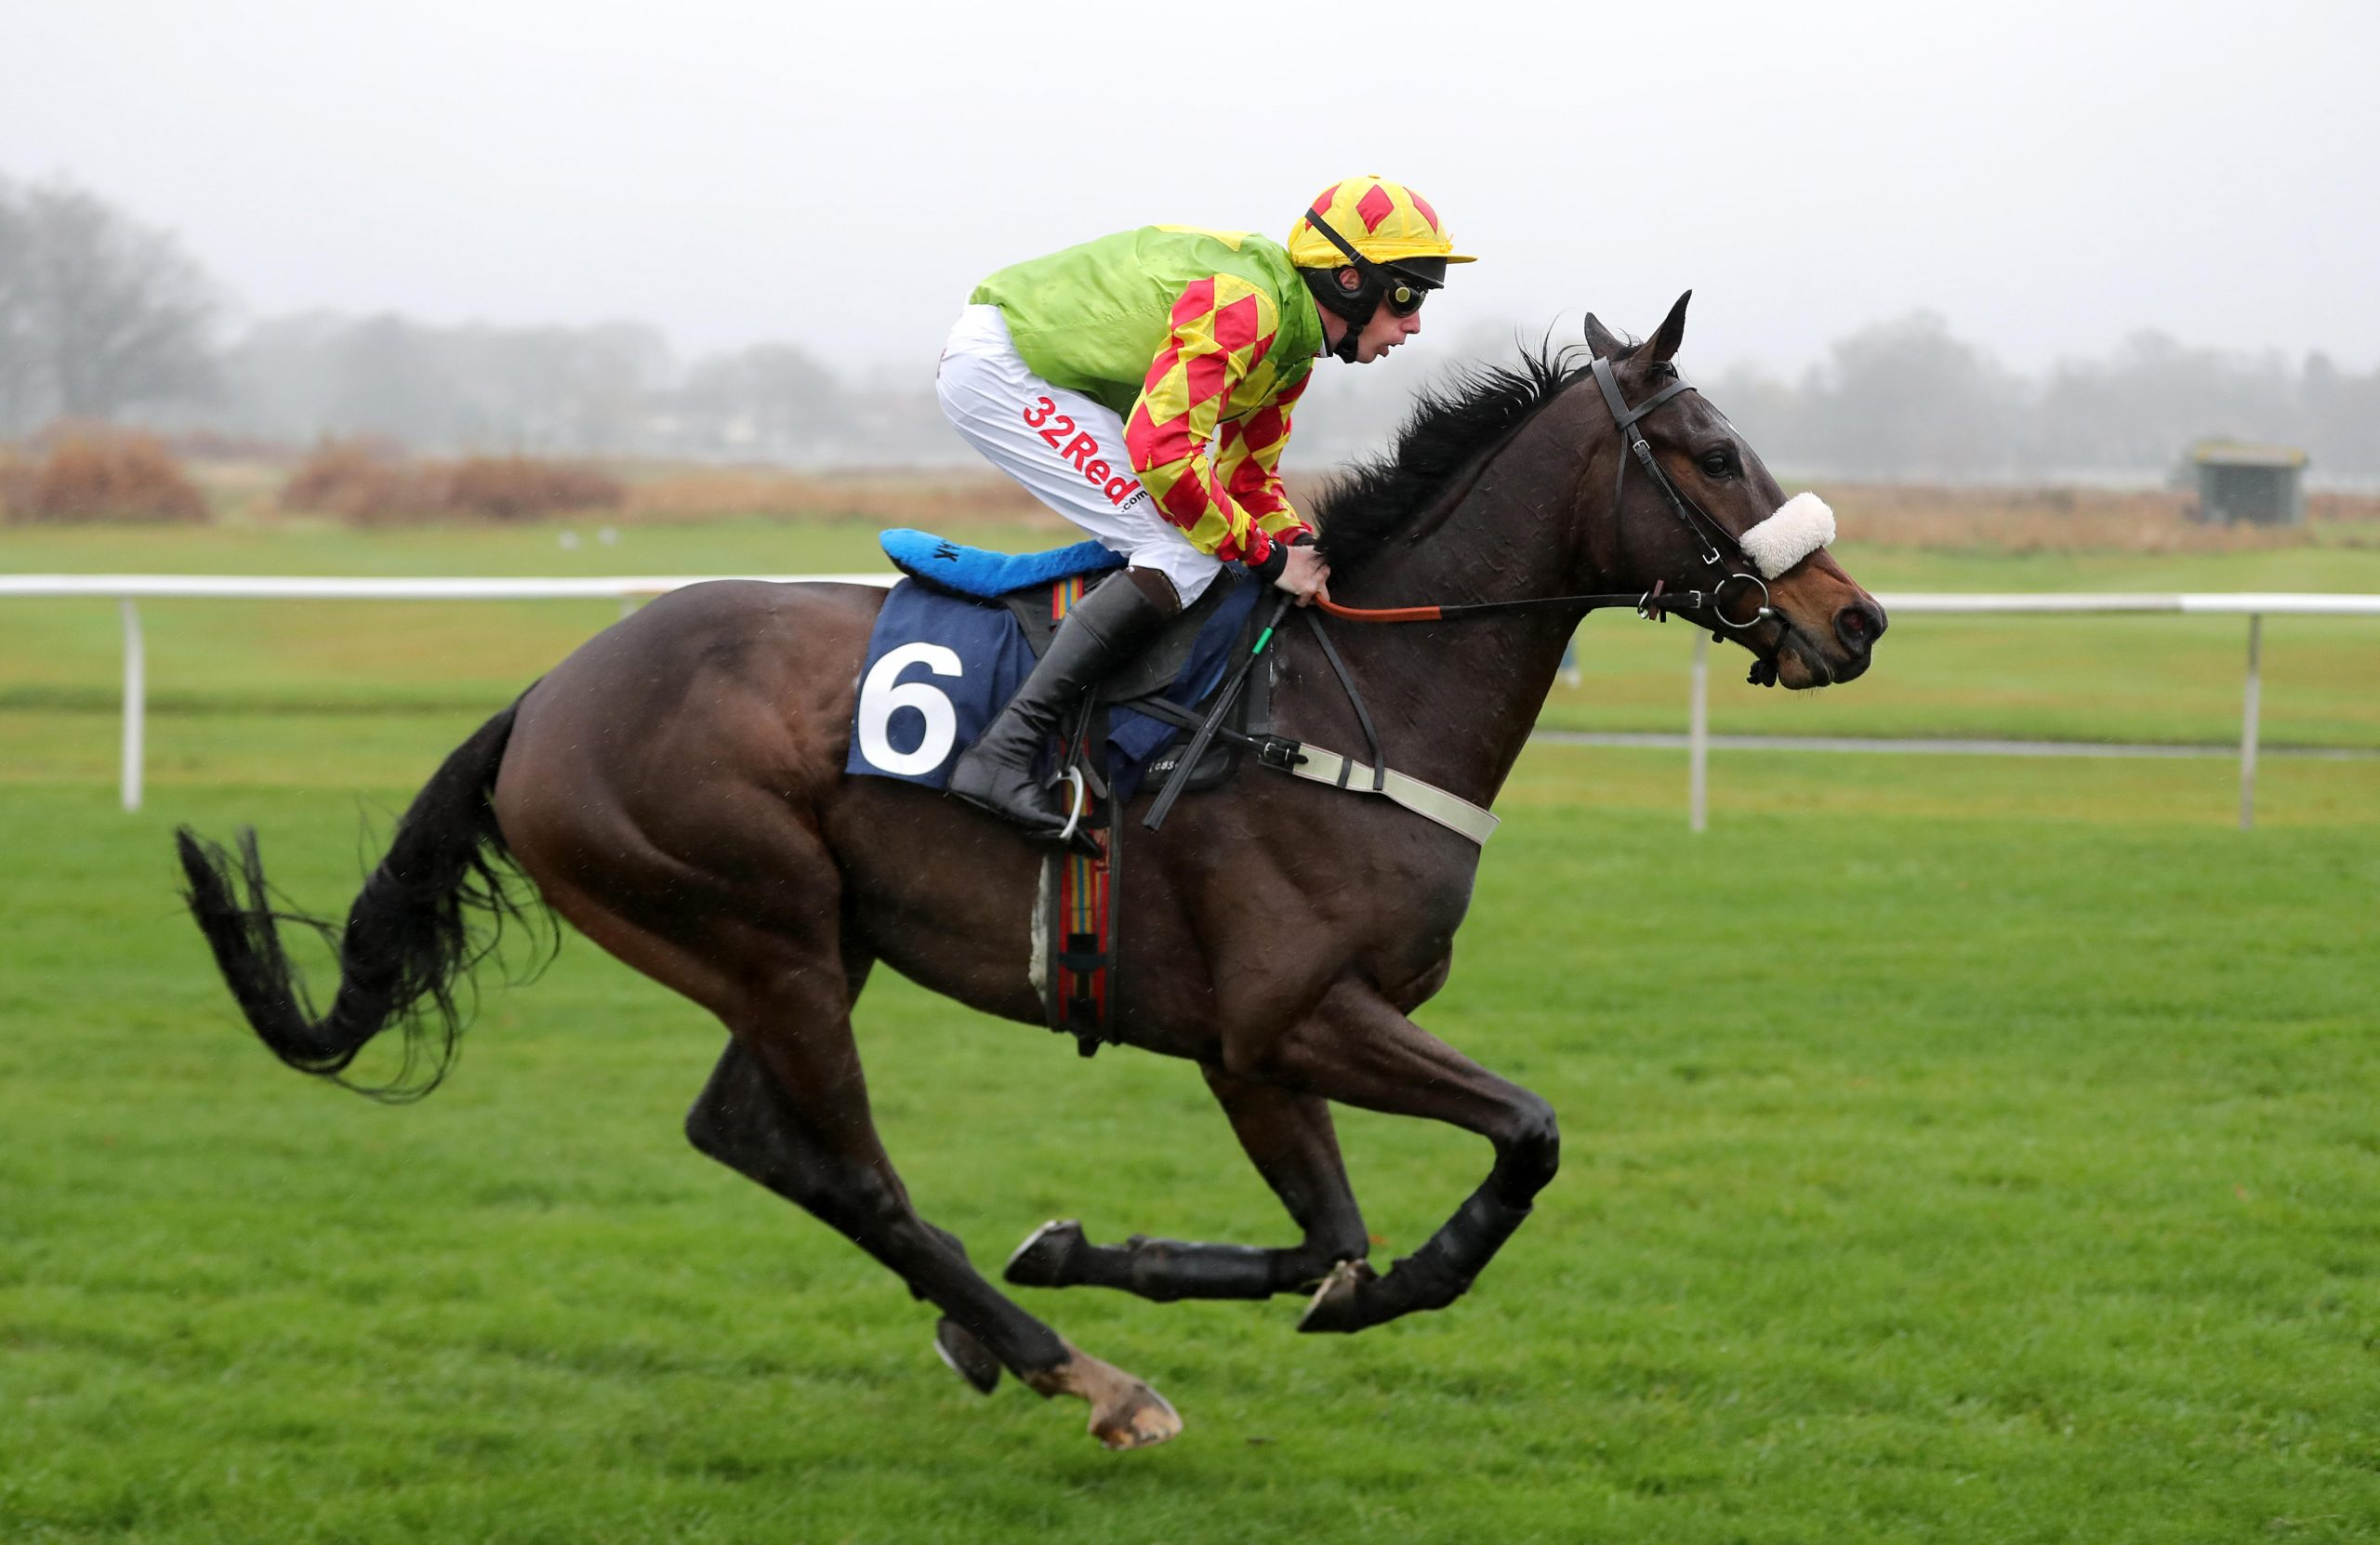 Lord Du Mesnil ridden by Alain Cawley in action during the Weatherbys Racing Bank 'The French Furze' Novices' Hurdle